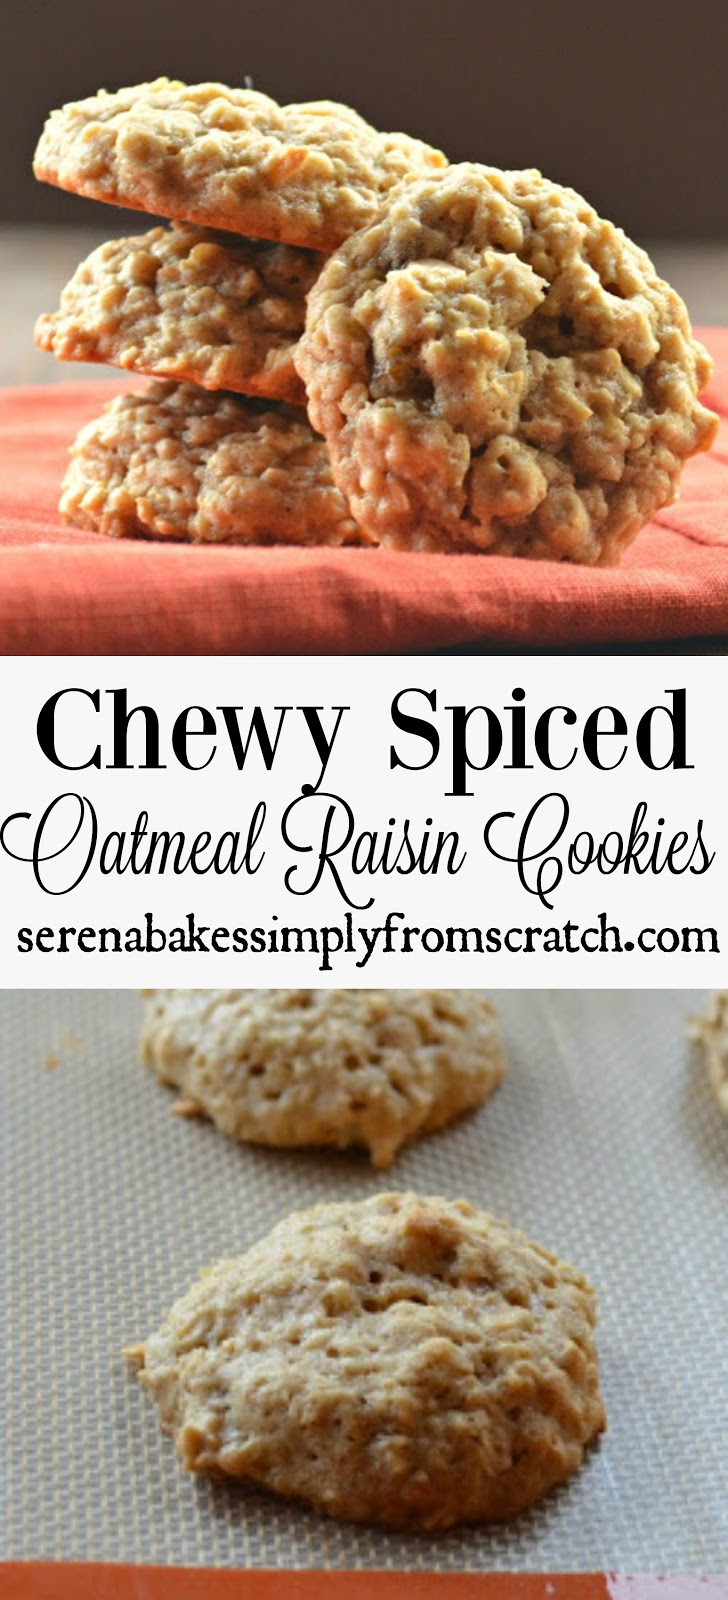 Chewy Spiced Oatmeal Raisin Cookies | Serena Bakes Simply From Scratch